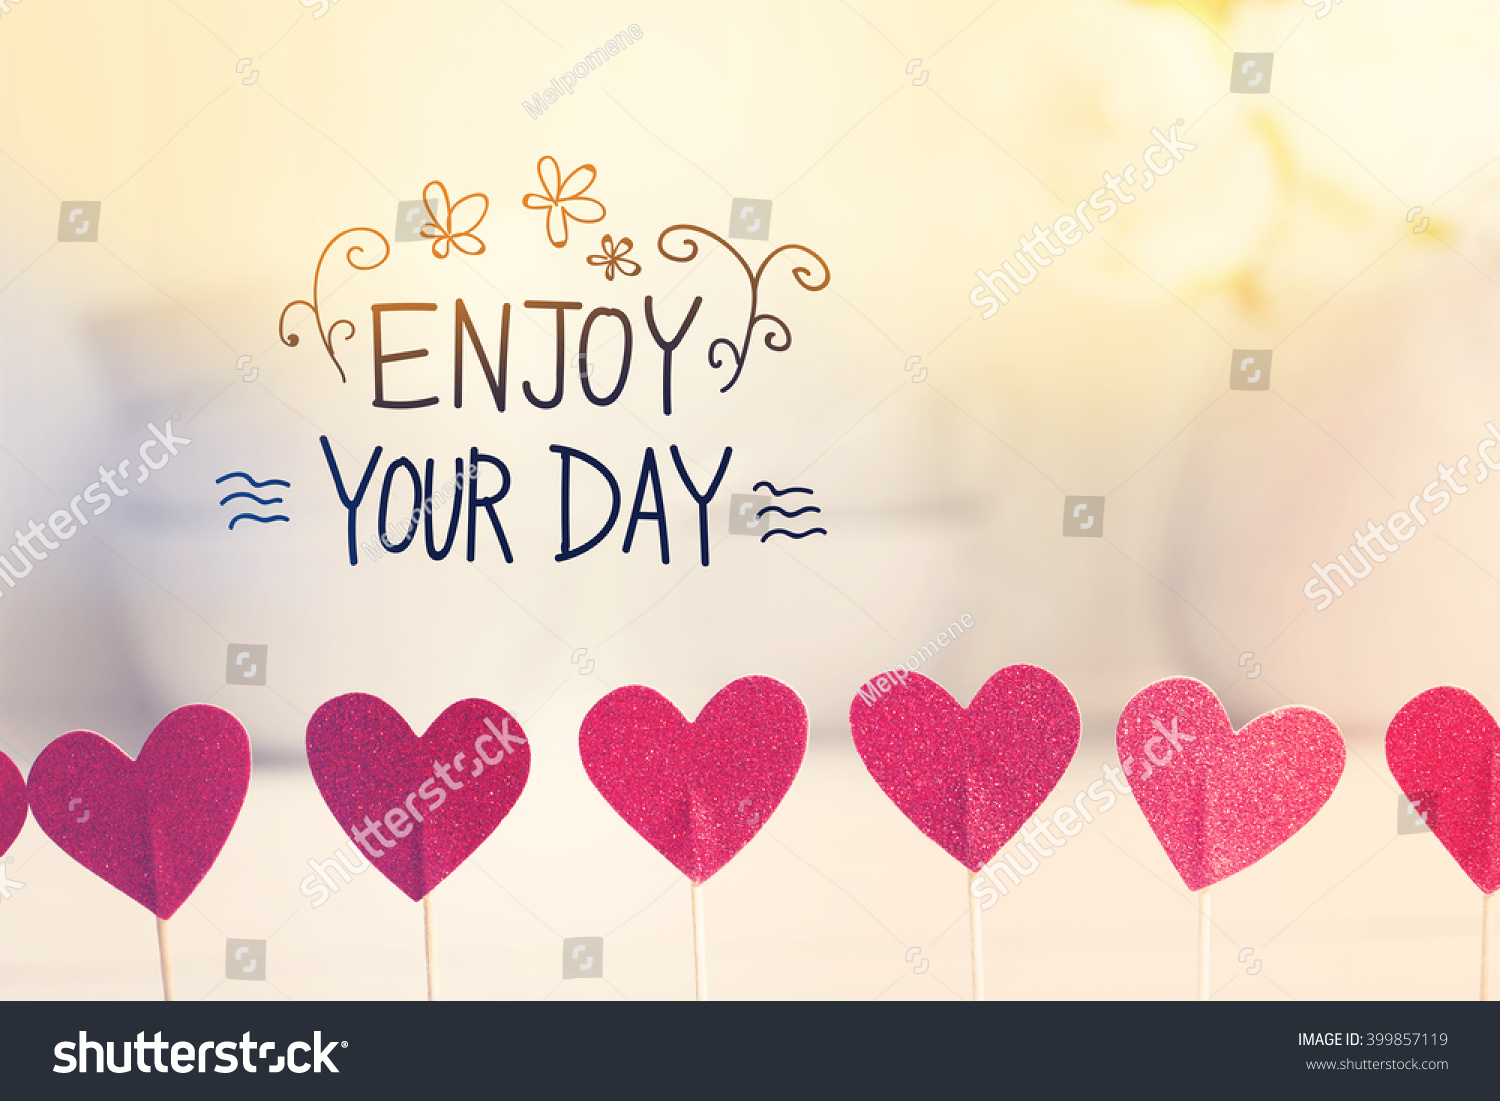 Amazing Enjoy Your Day Message With Small Red Hearts With White Dishes